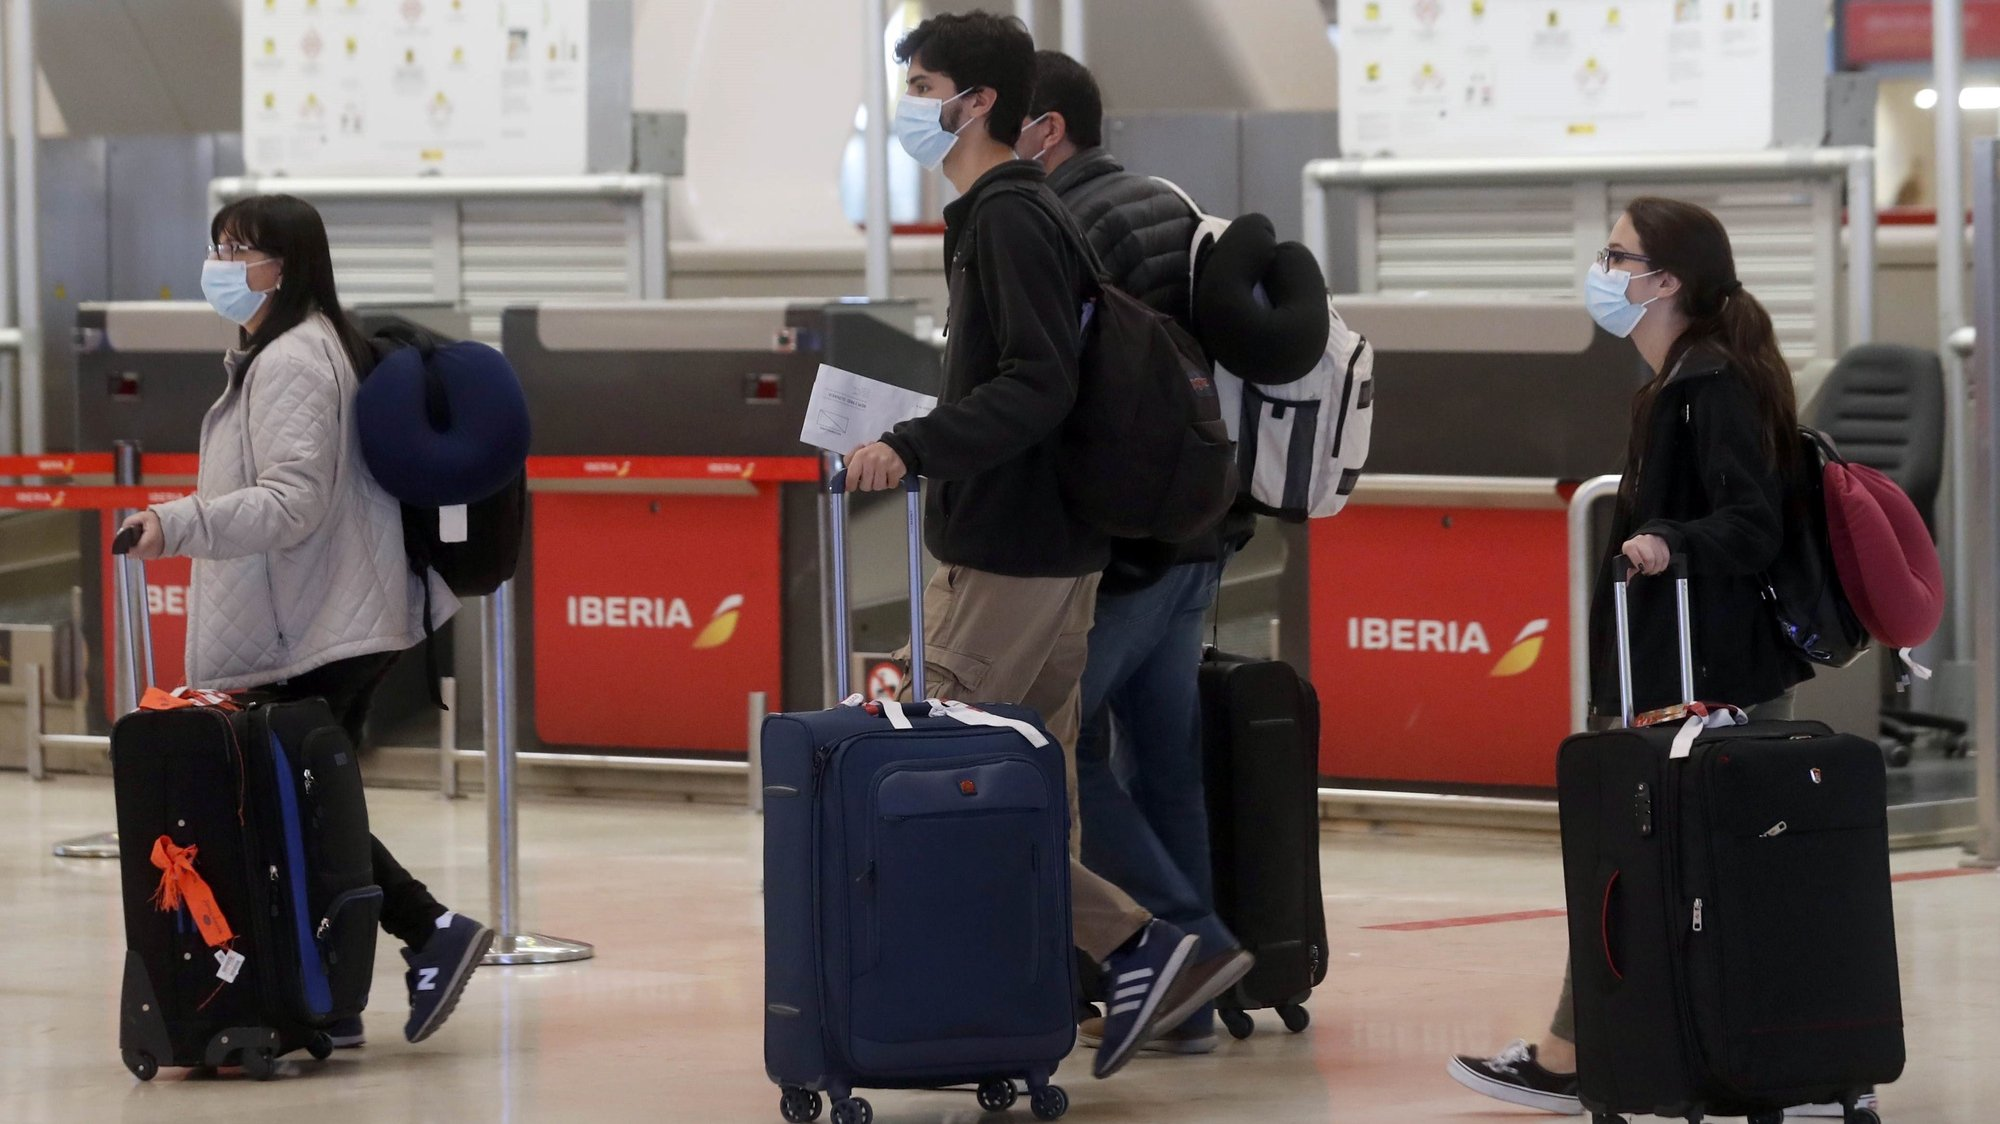 epa08292236 Passengers wearing face masks walk with their baggage at the Adolfo Suarez Madrid-Barajas Airport in Madrid, Spain, 13 March 2020. Morocco has closed its border with Spain amid the ongoing pandemic of the COVID-19 disease caused by the SARS-CoV-2 coronavirus.  EPA/JJ GUILLEN